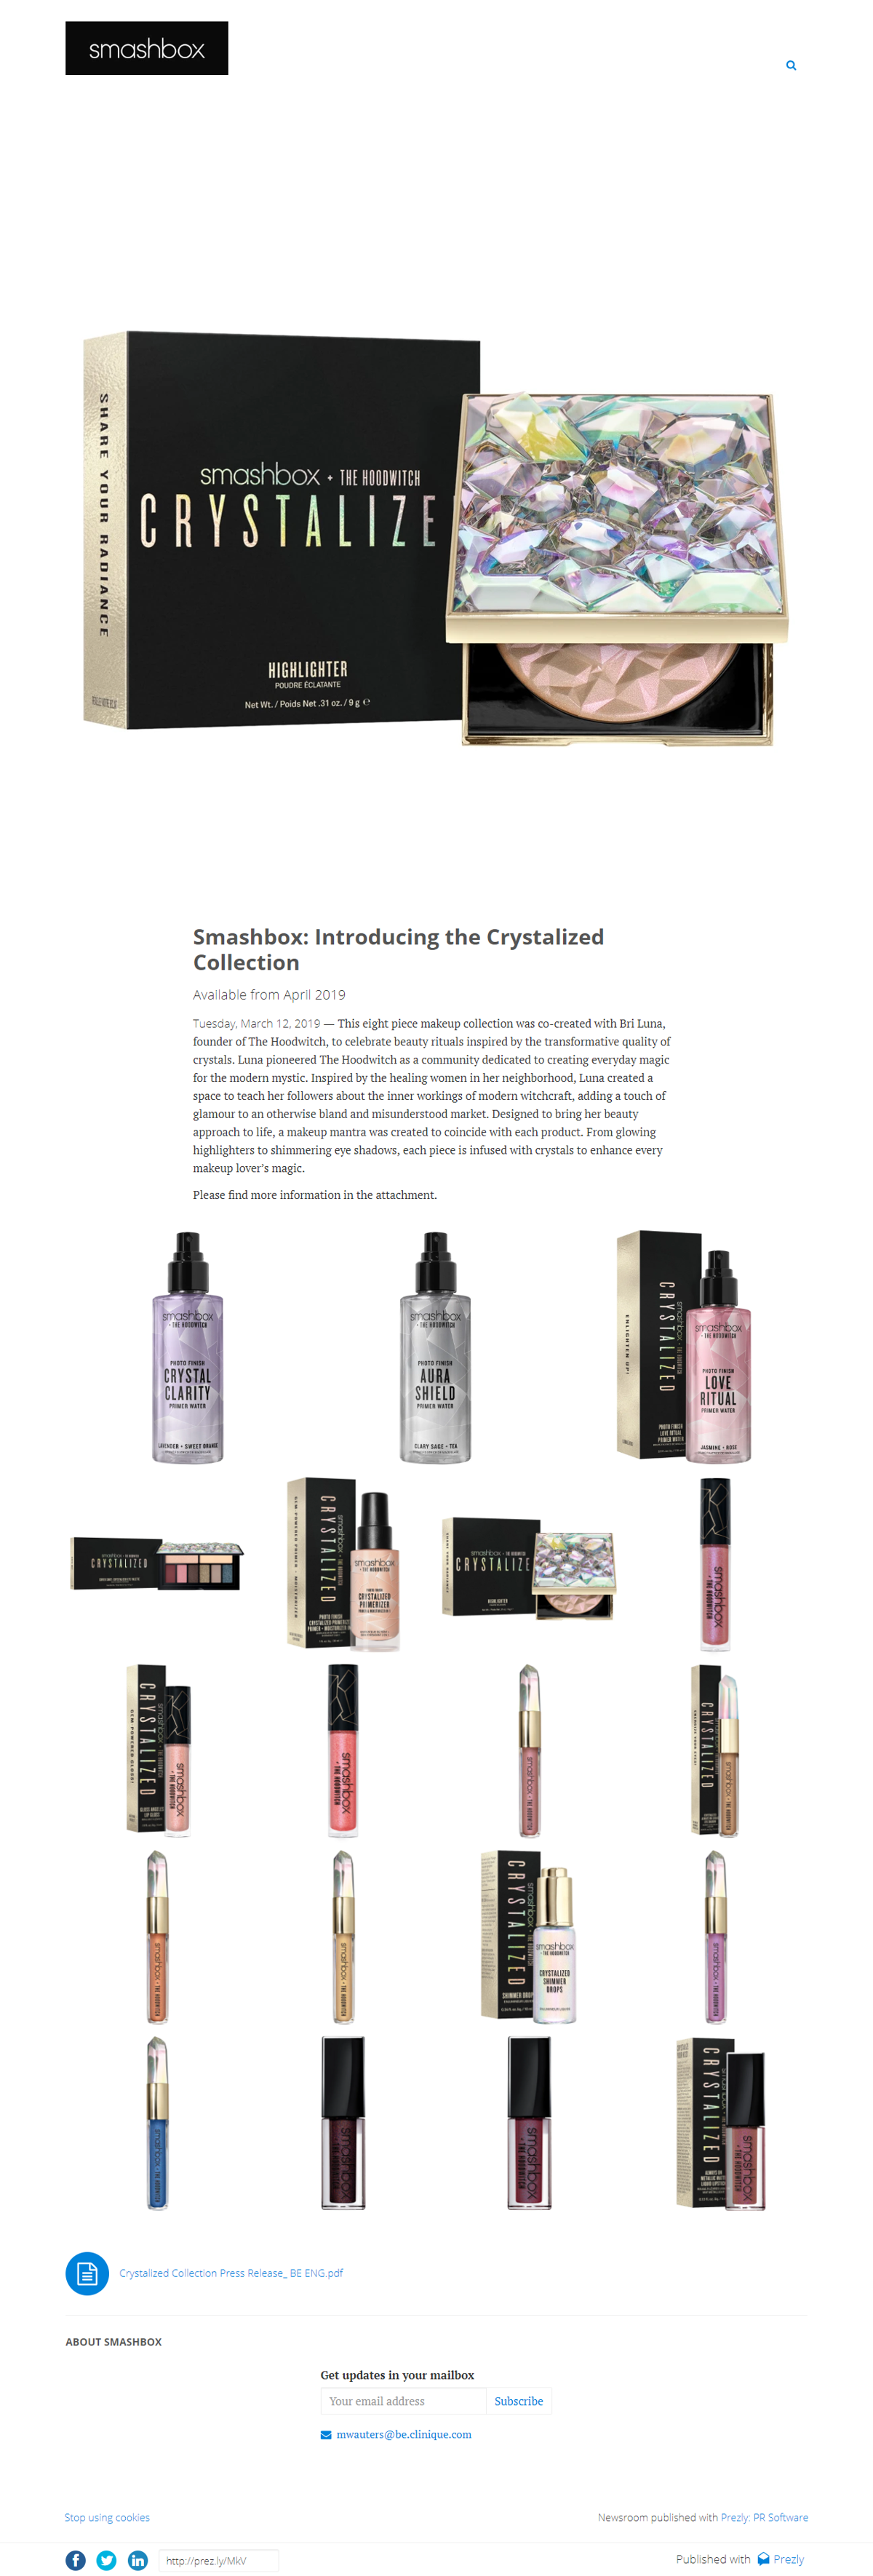 Smashbox: Introducing the Crystalized Collection